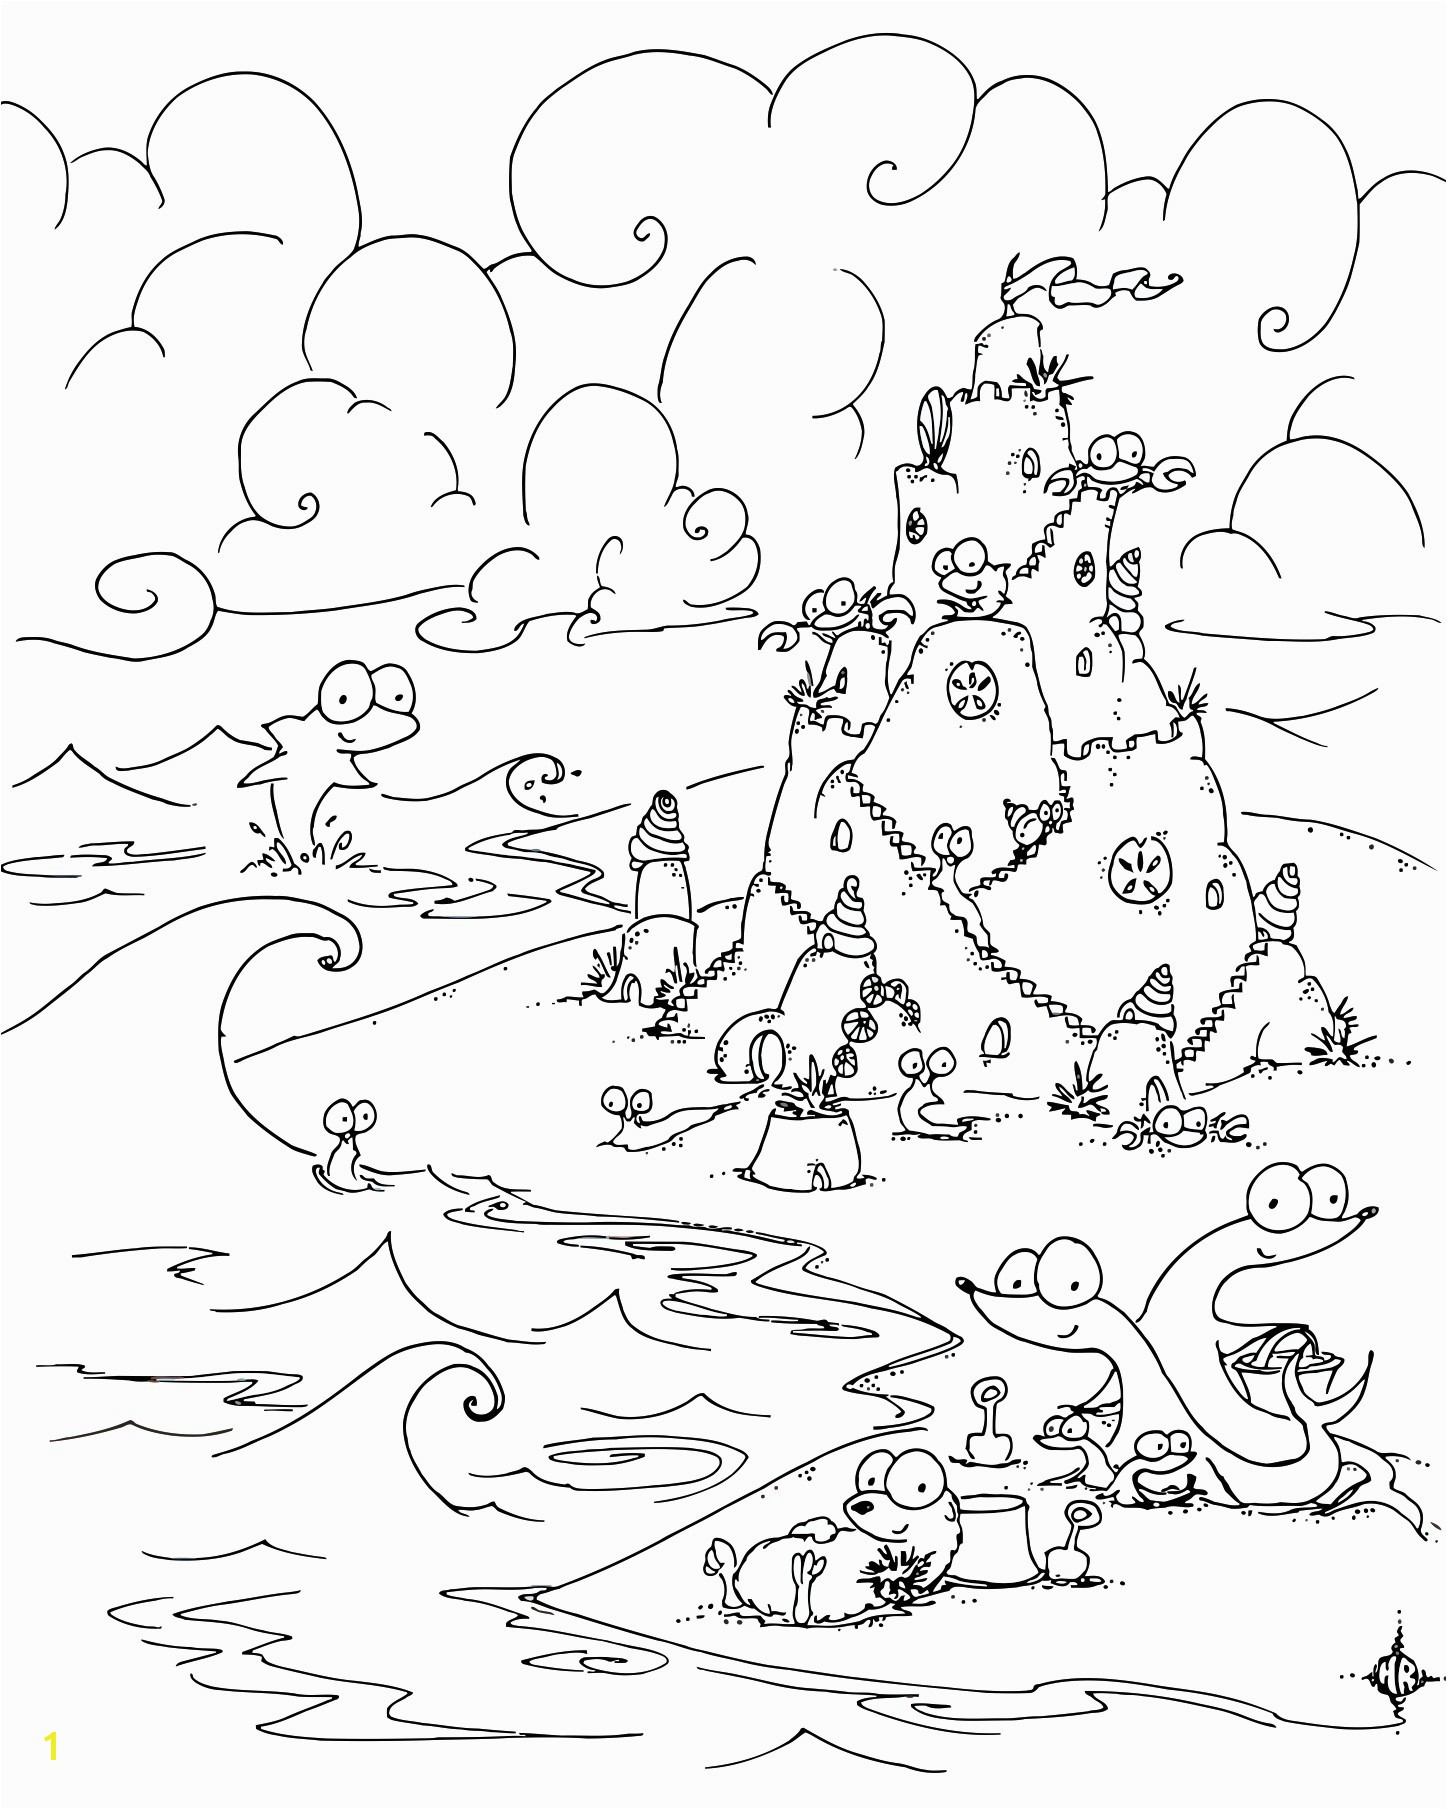 Coloring Page Sea Creatures Building A Sand Castle the Beach